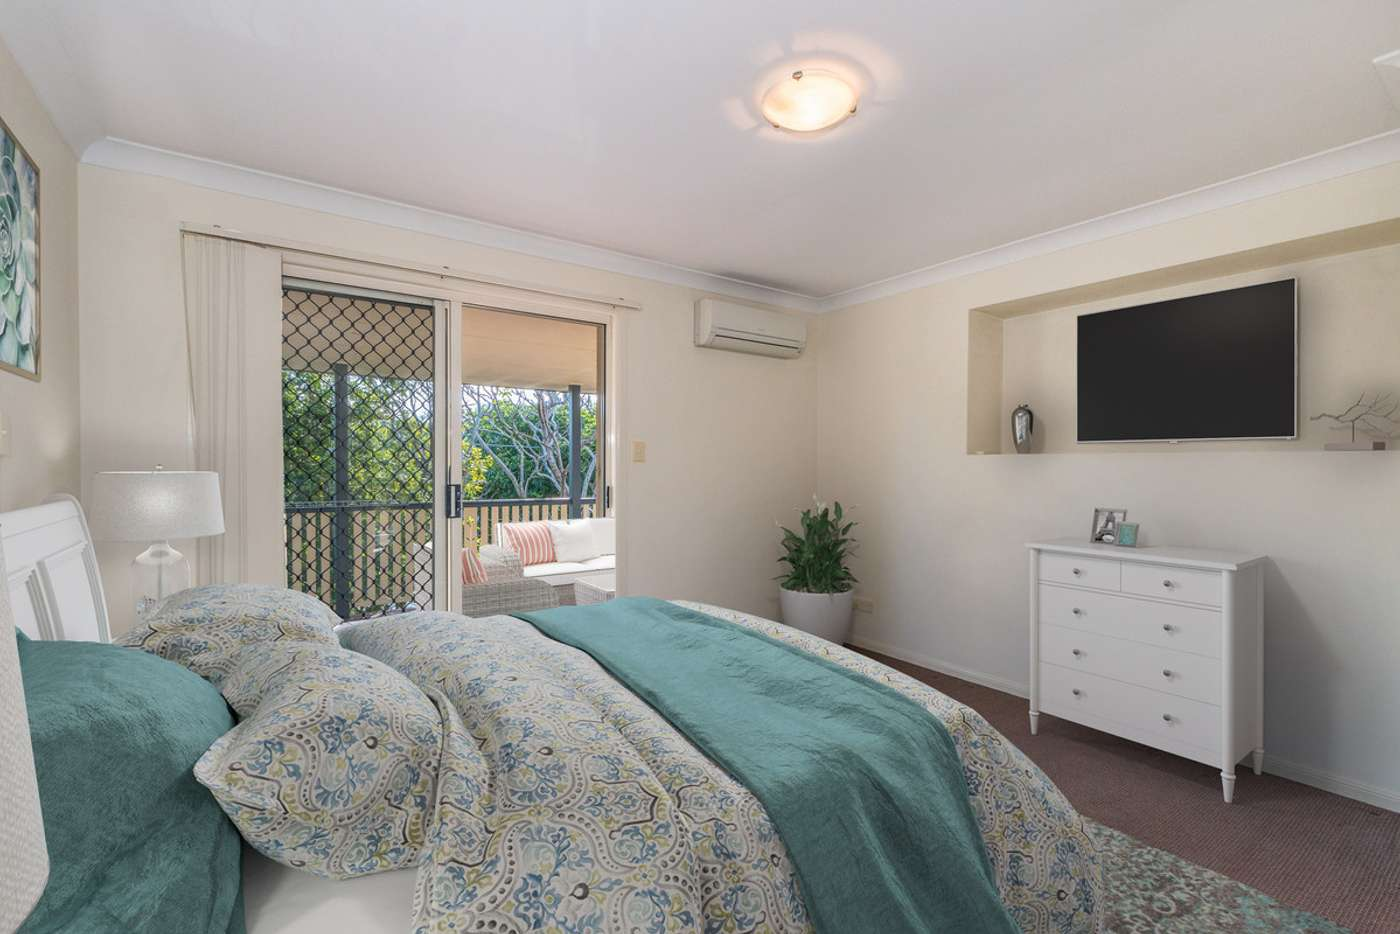 Fifth view of Homely townhouse listing, 3/18 Baron Street, Greenslopes QLD 4120